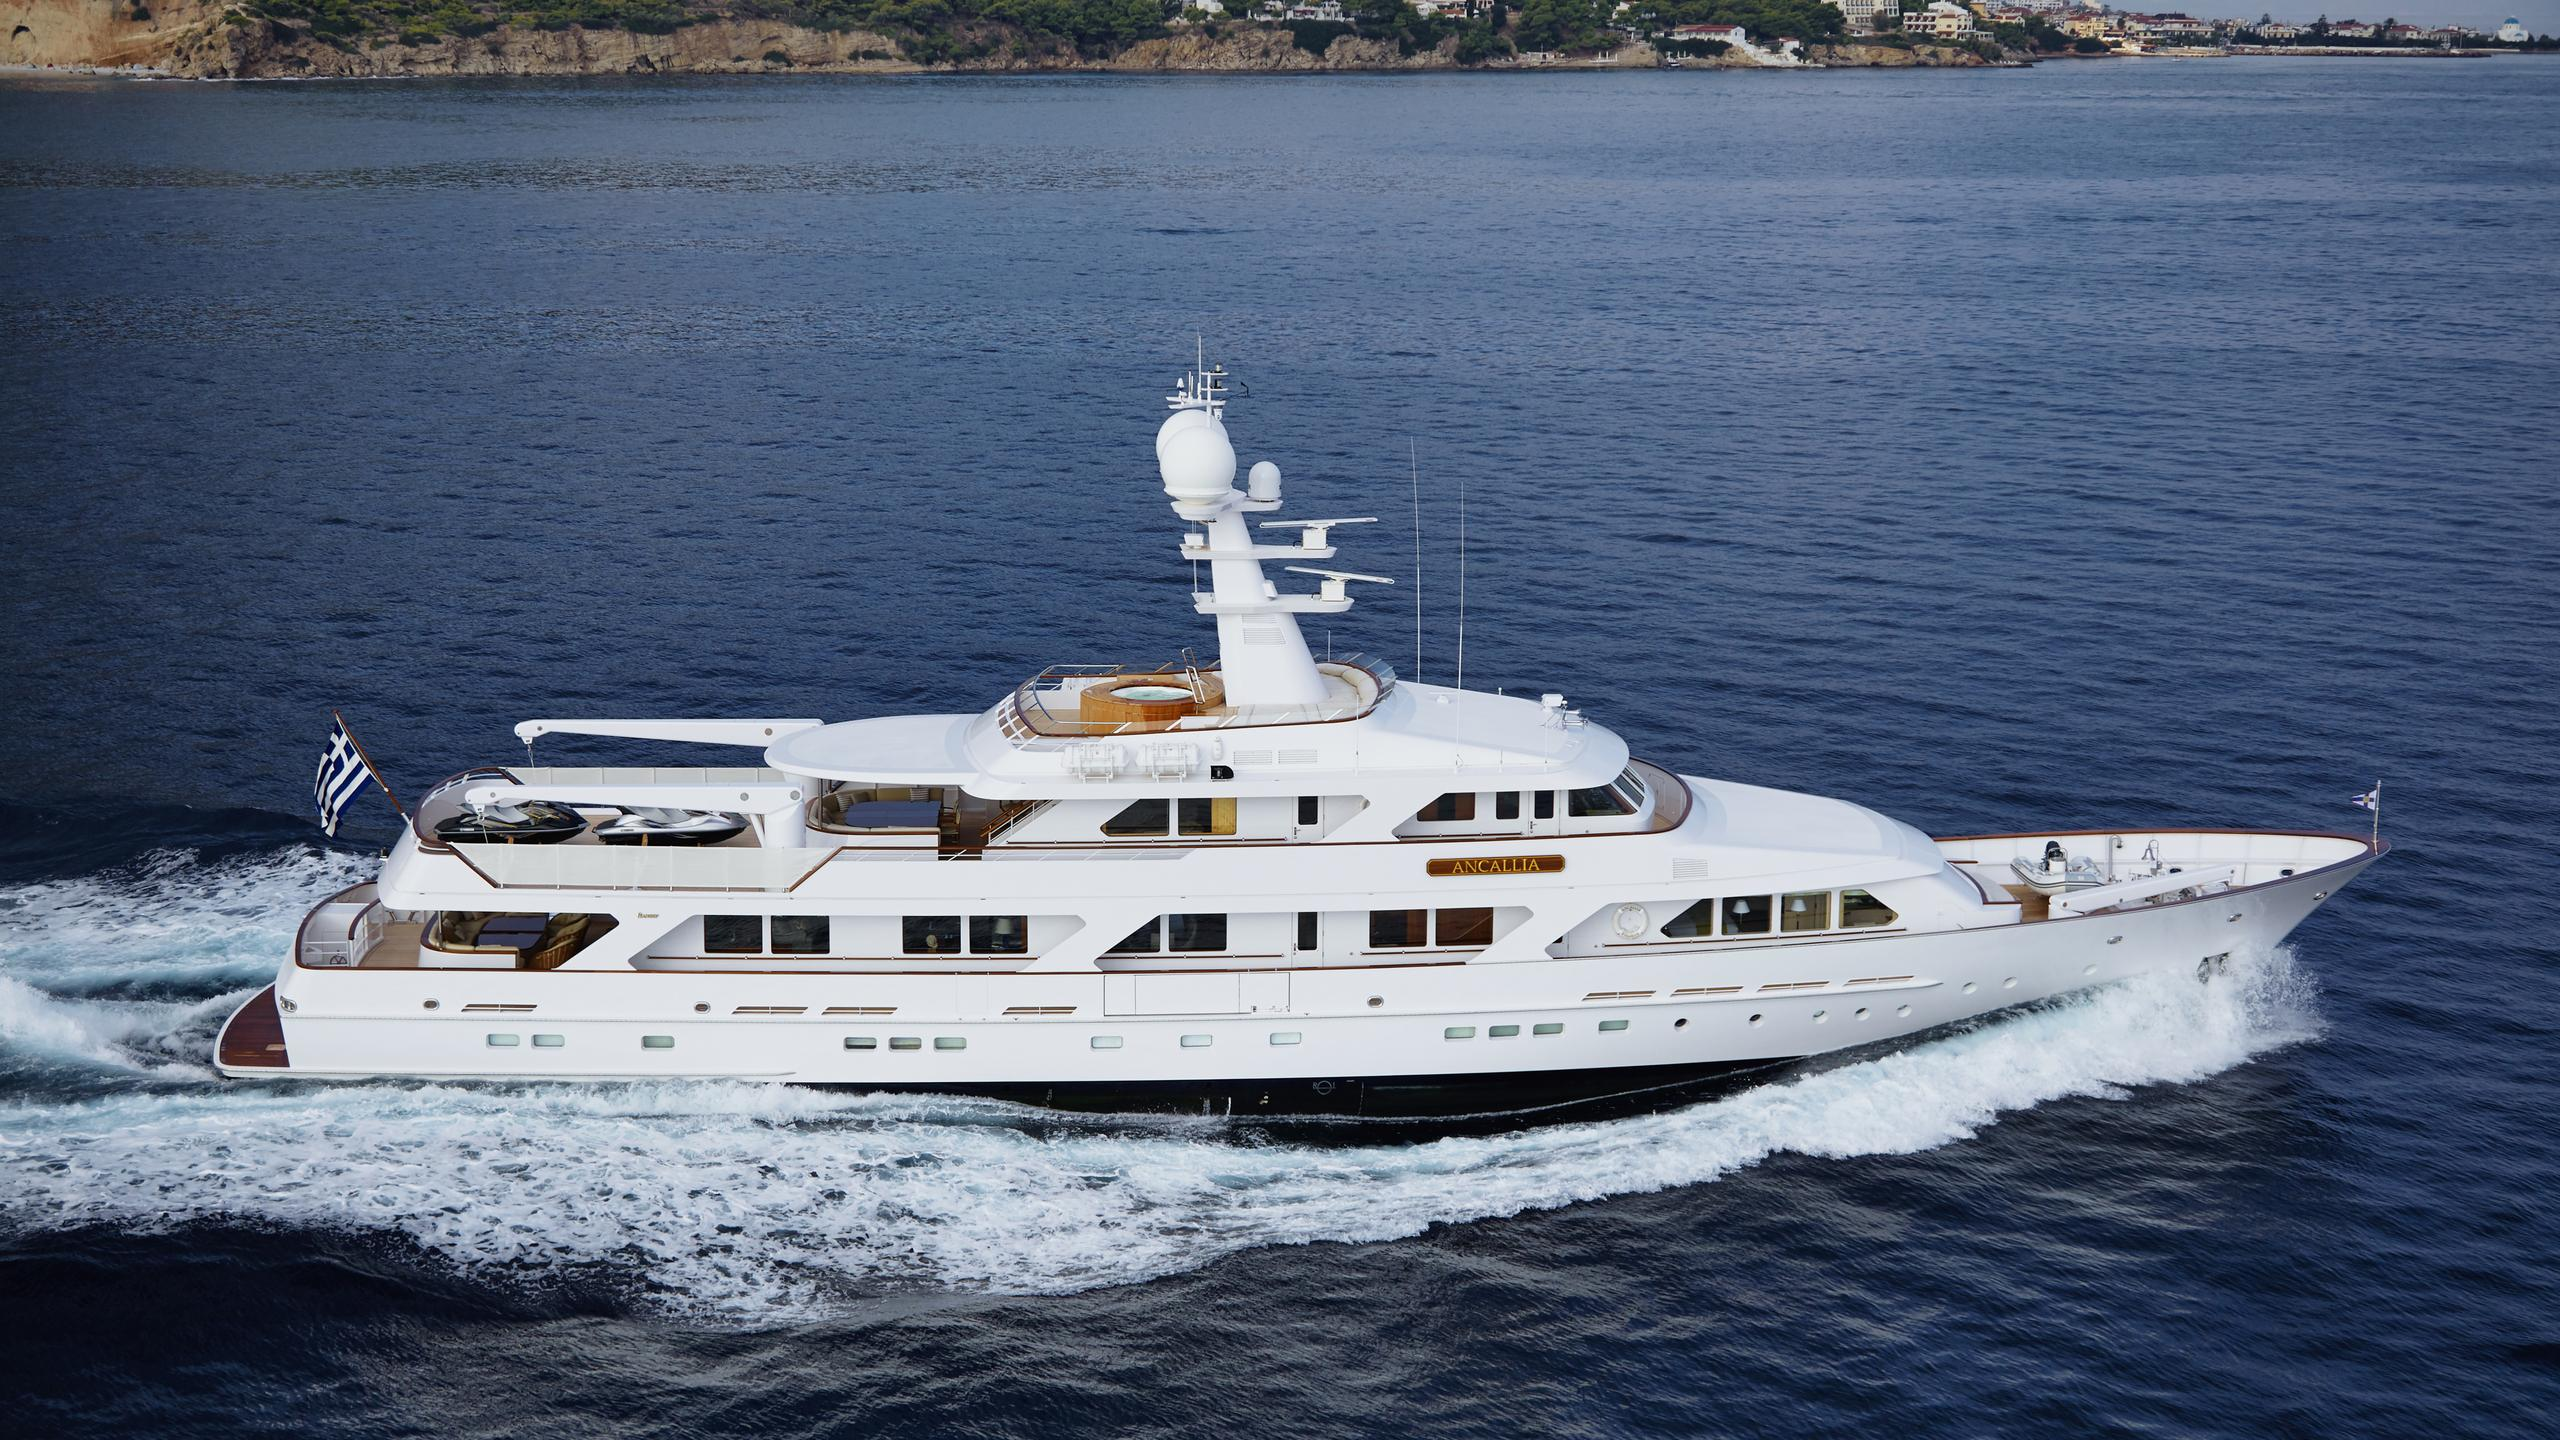 ancallia-yacht-for-charter-profile